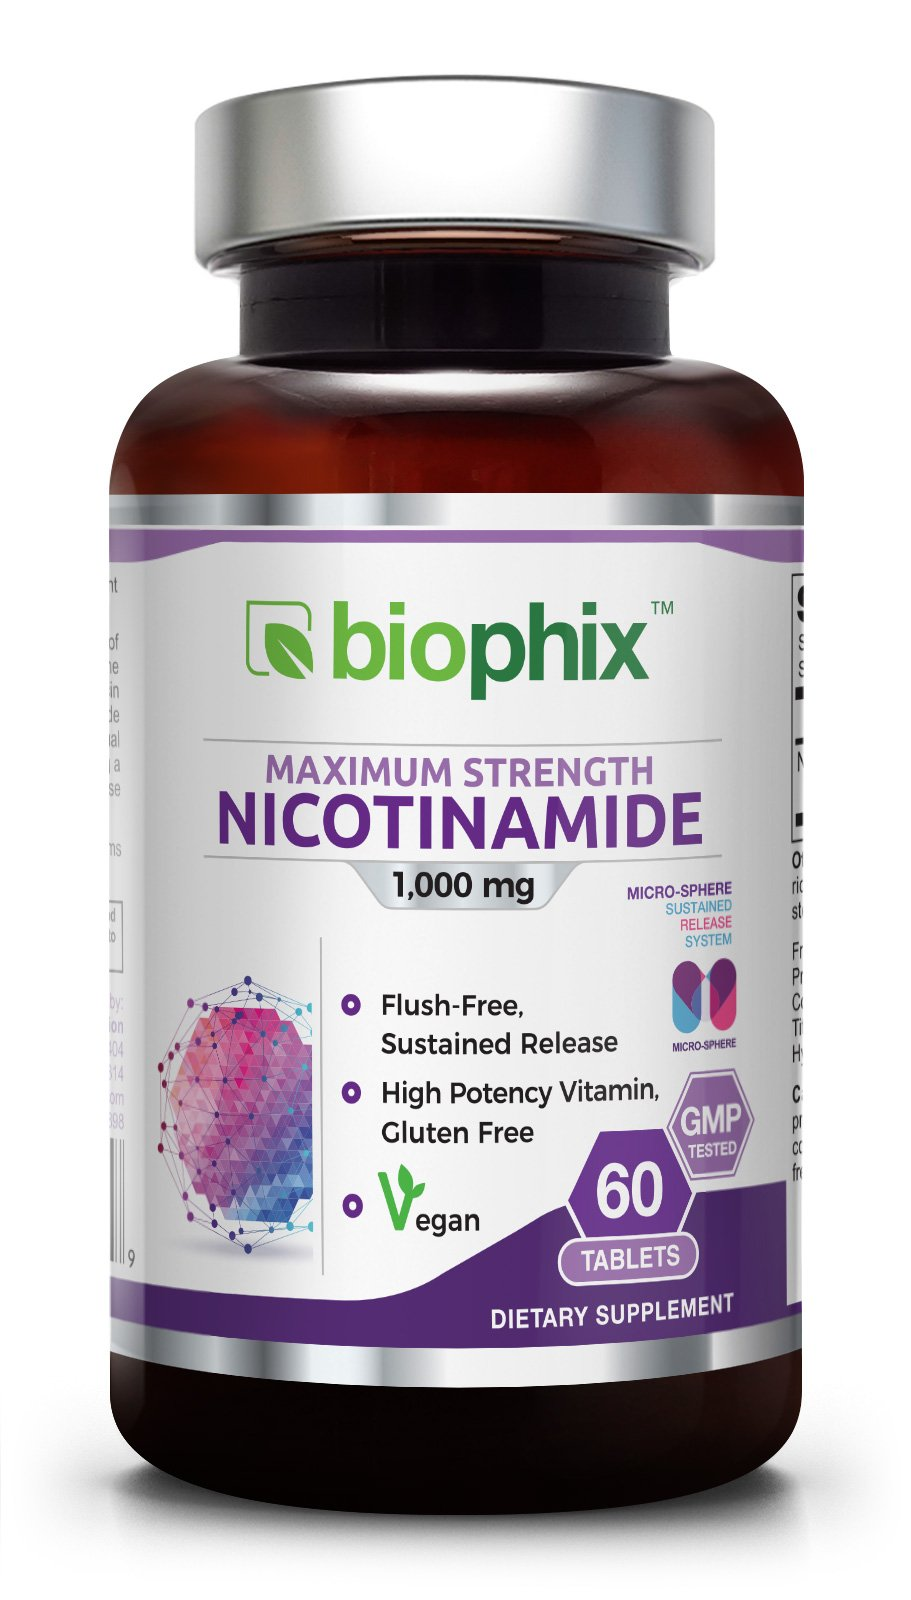 B-3 Nicotinamide 1000 mg 60 Tabs Extra Strength Slow Release Natural Flush-Free Vitamin Formula | Gluten-Free Nicotinic Amide Niacin | Supports Skin Health | Cell Repair Support